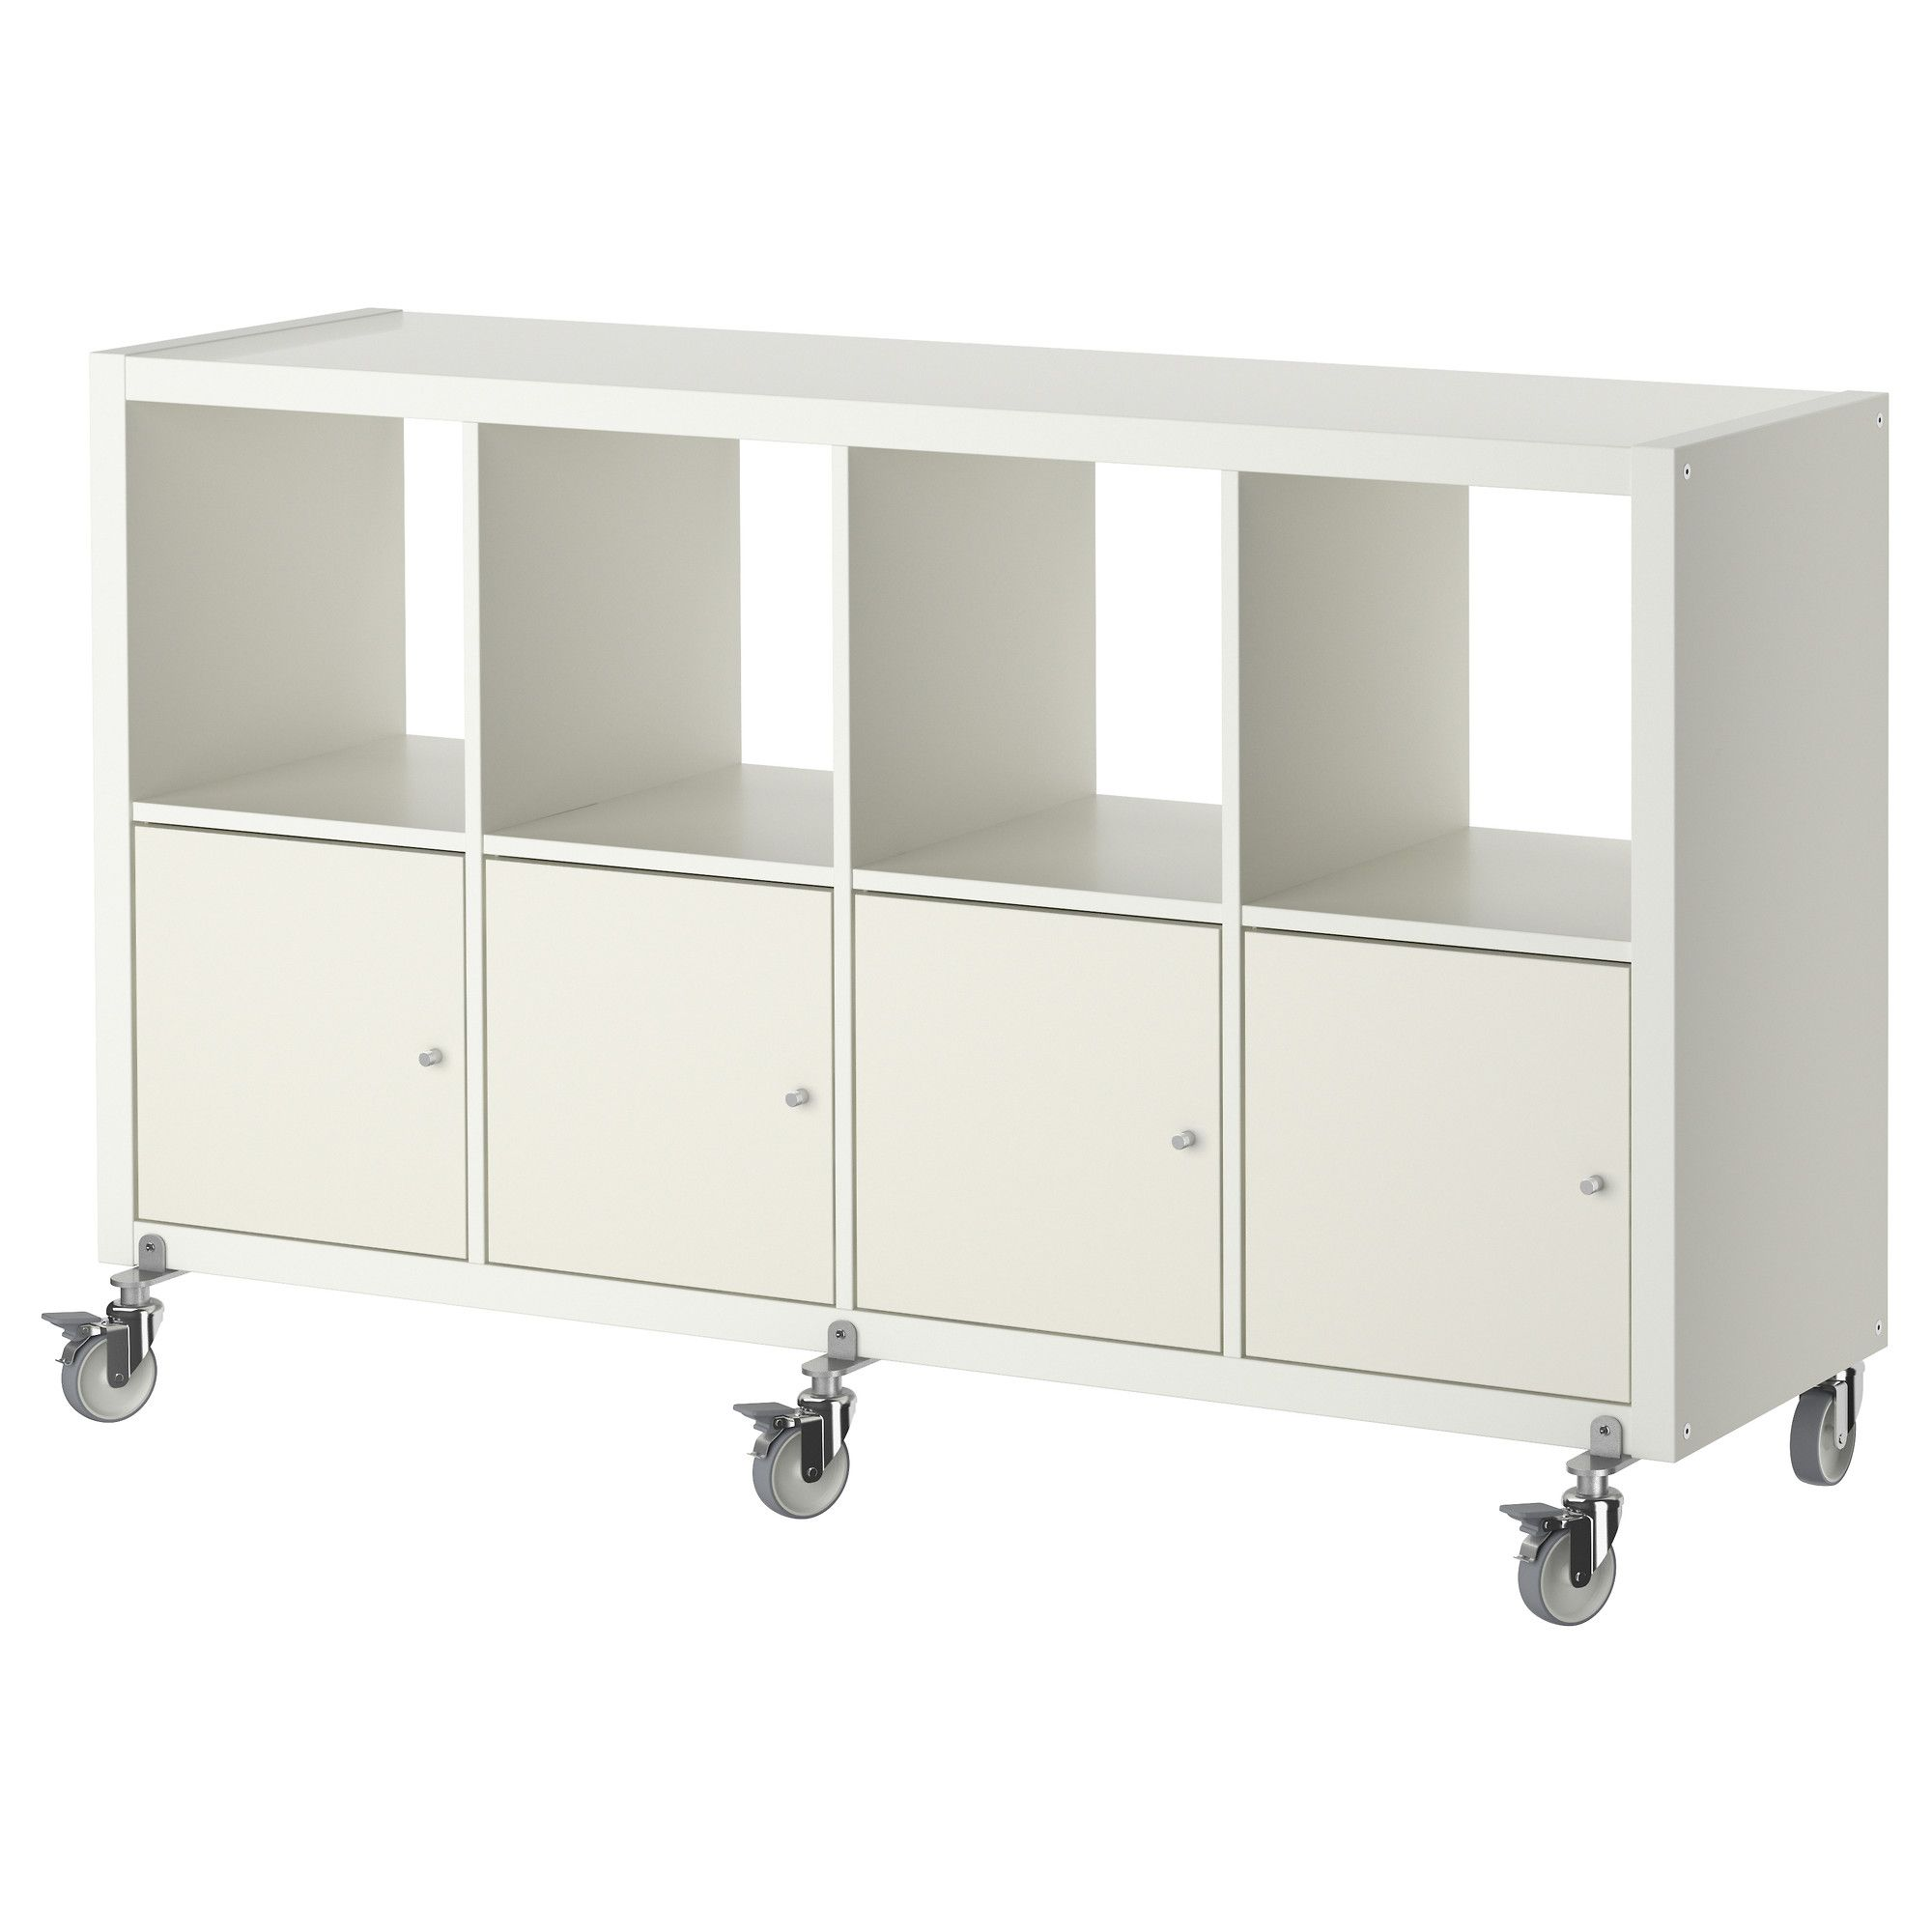 kallax shelf unit on casters with 4 doors, white in 2018 | ikea